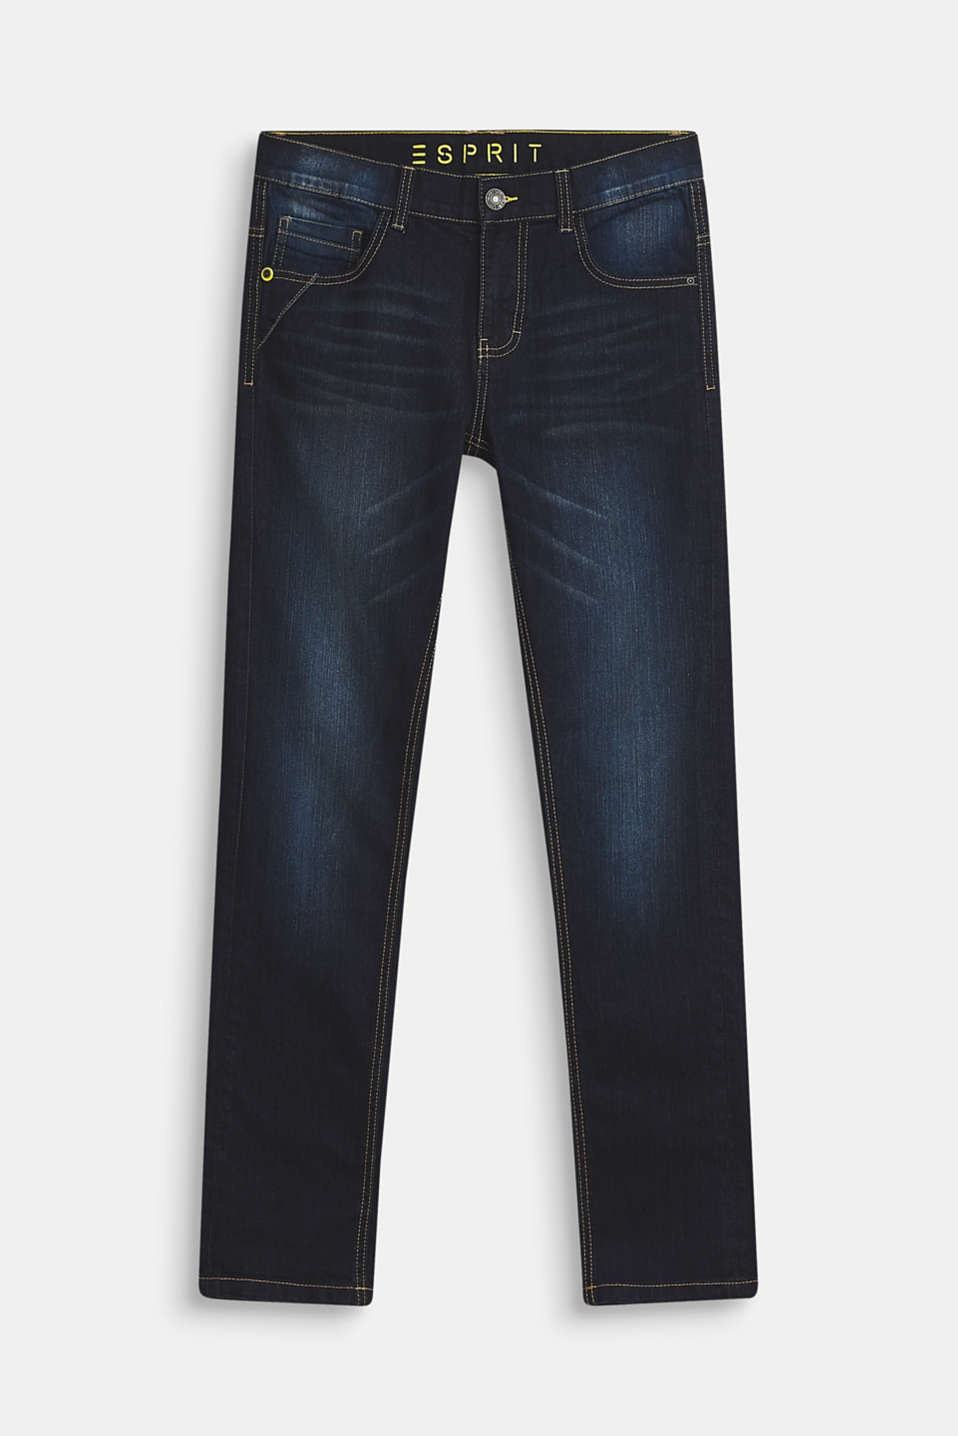 Esprit - Stretch jeans with a garment-washed effect and an adjustable waistband